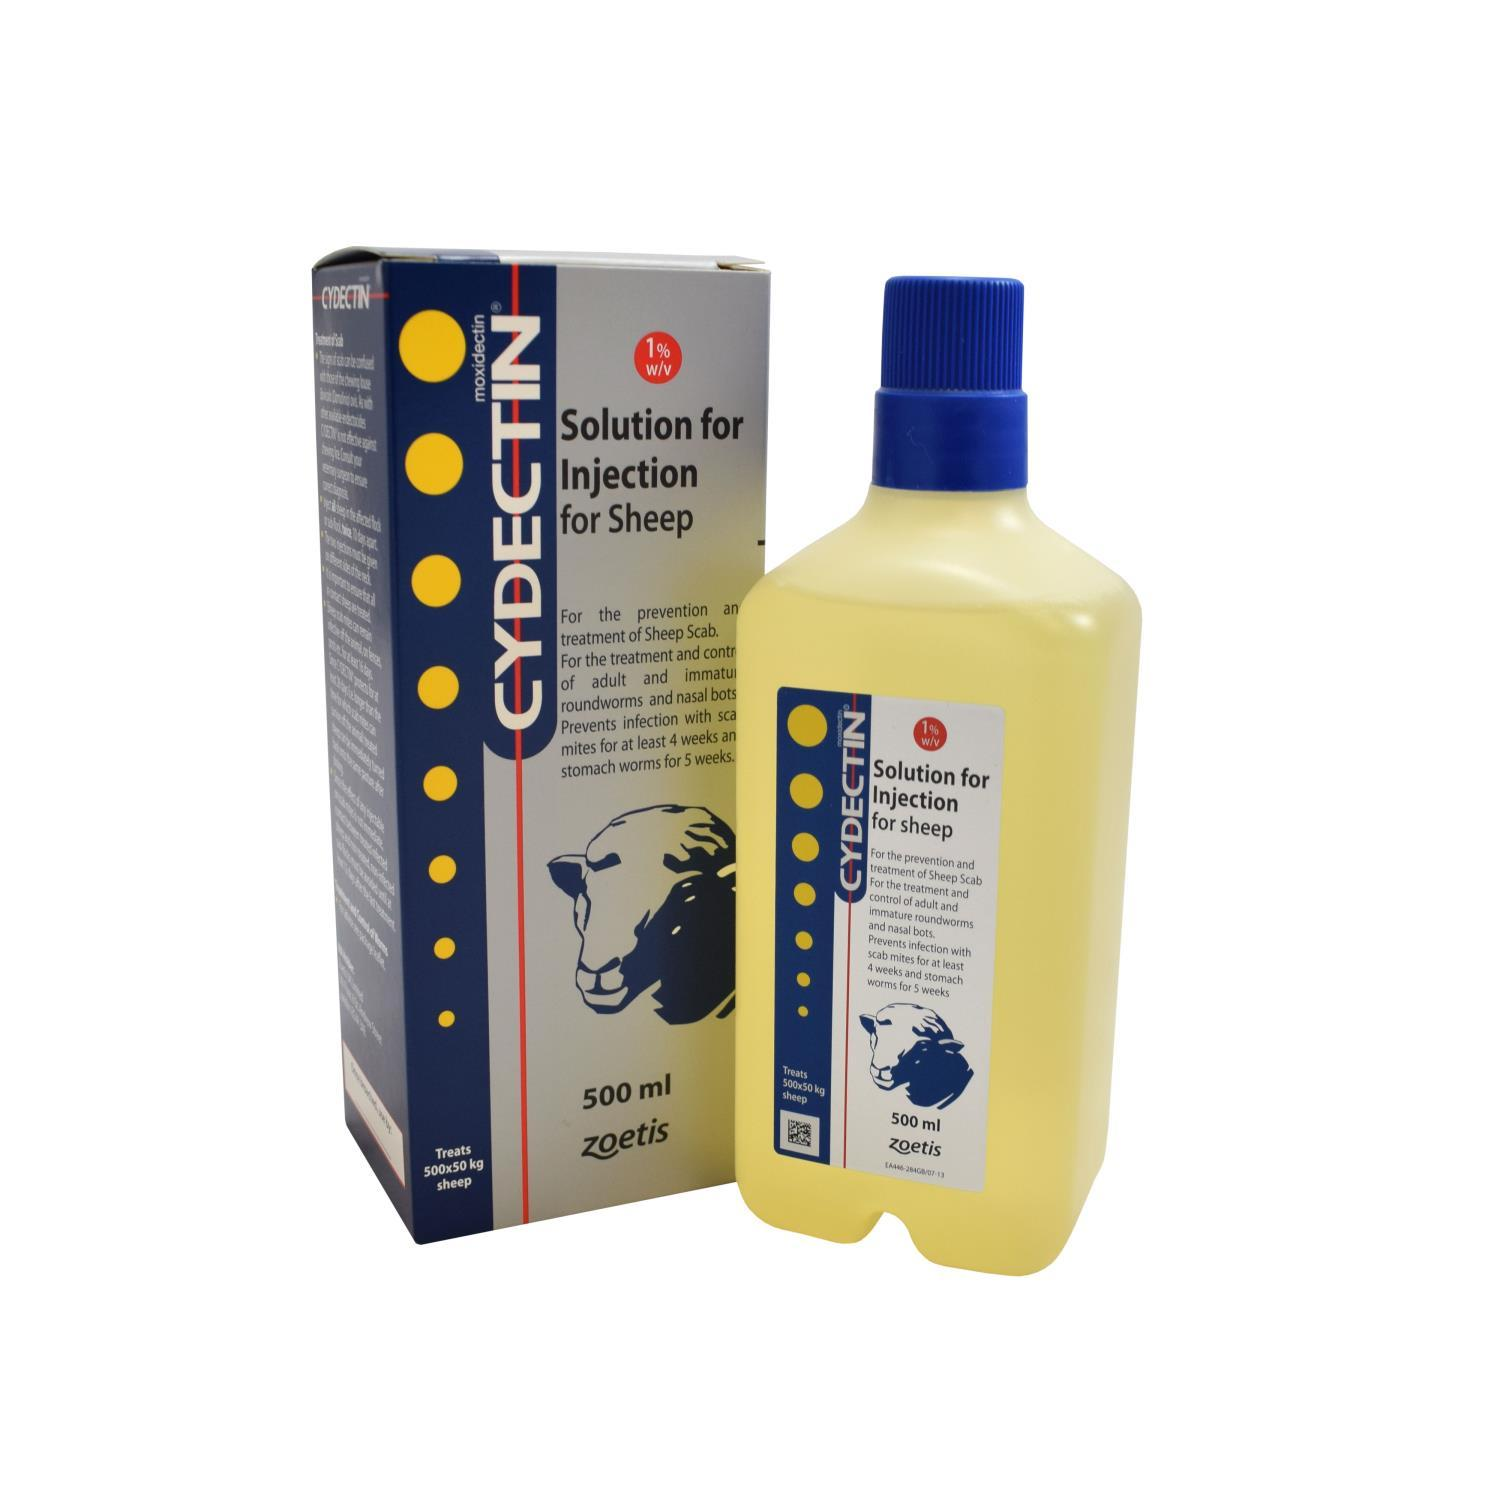 Buy Cydectin 1% Injection 500ml from Fane Valley Stores